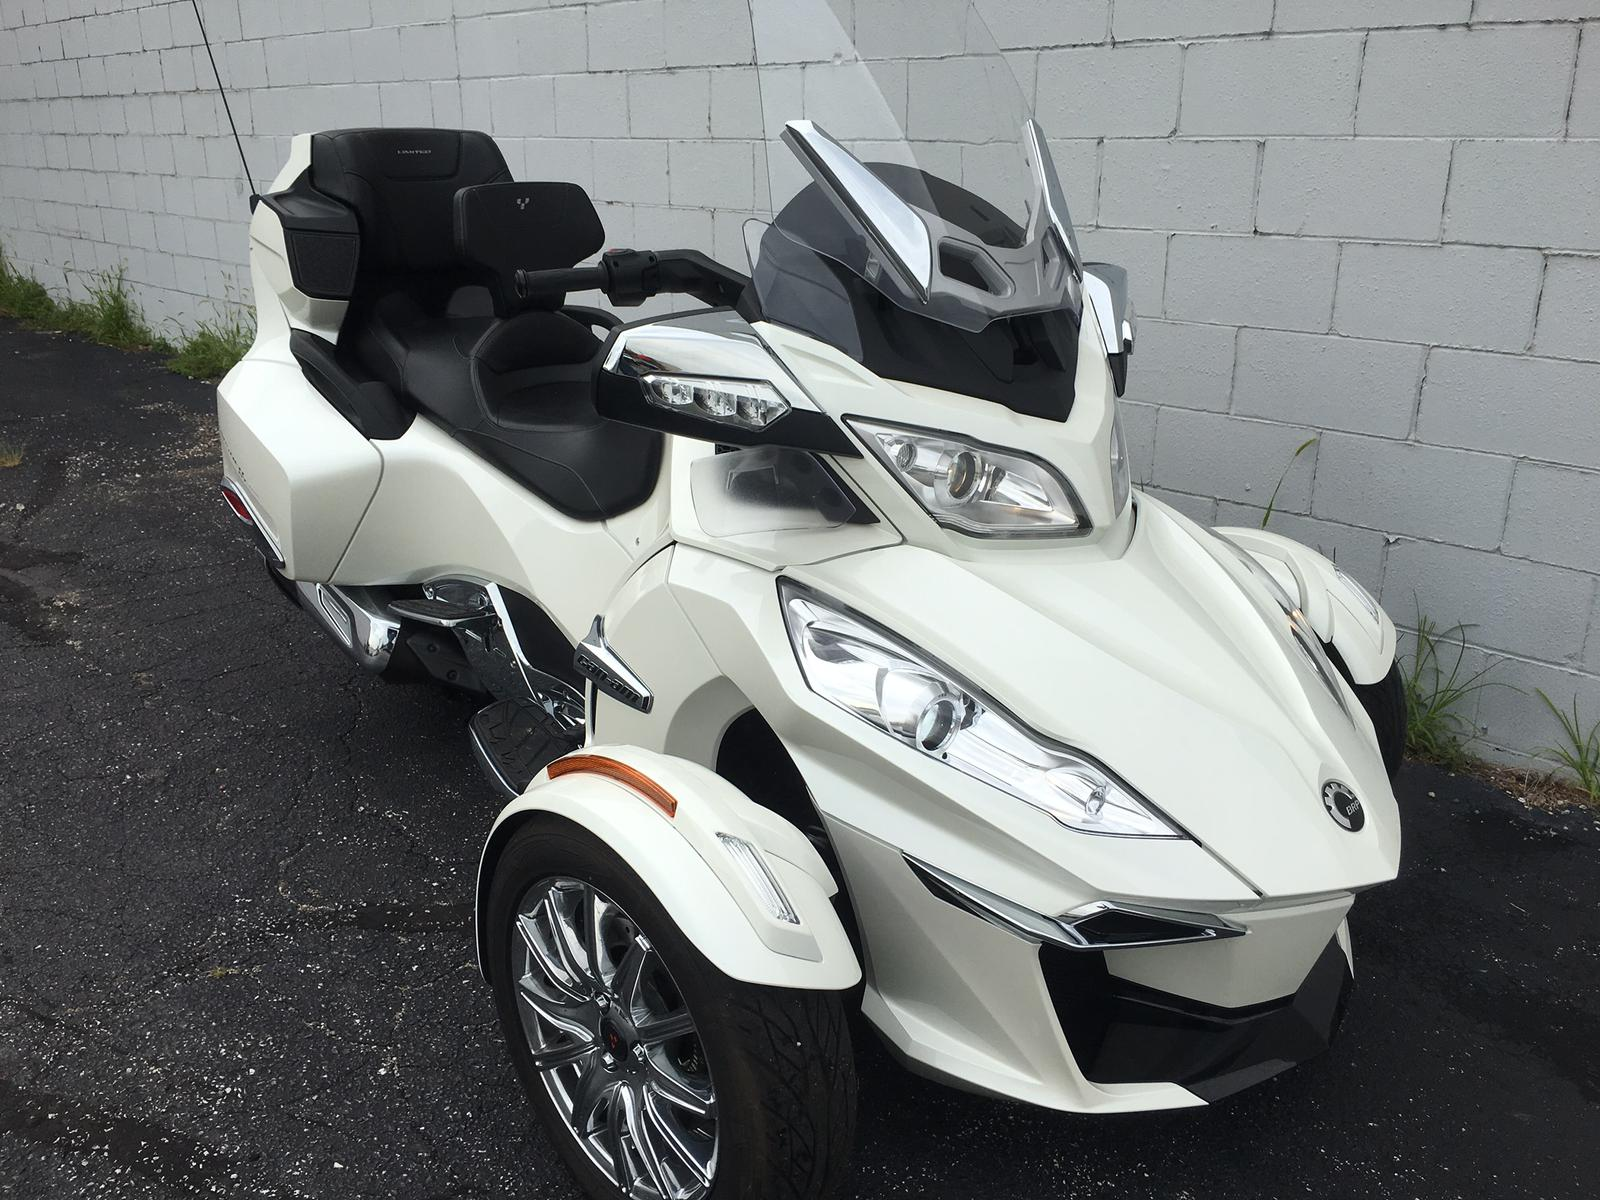 2014 can am spyder rt ltd for sale in indianapolis in dreyer honda 317 248 1403